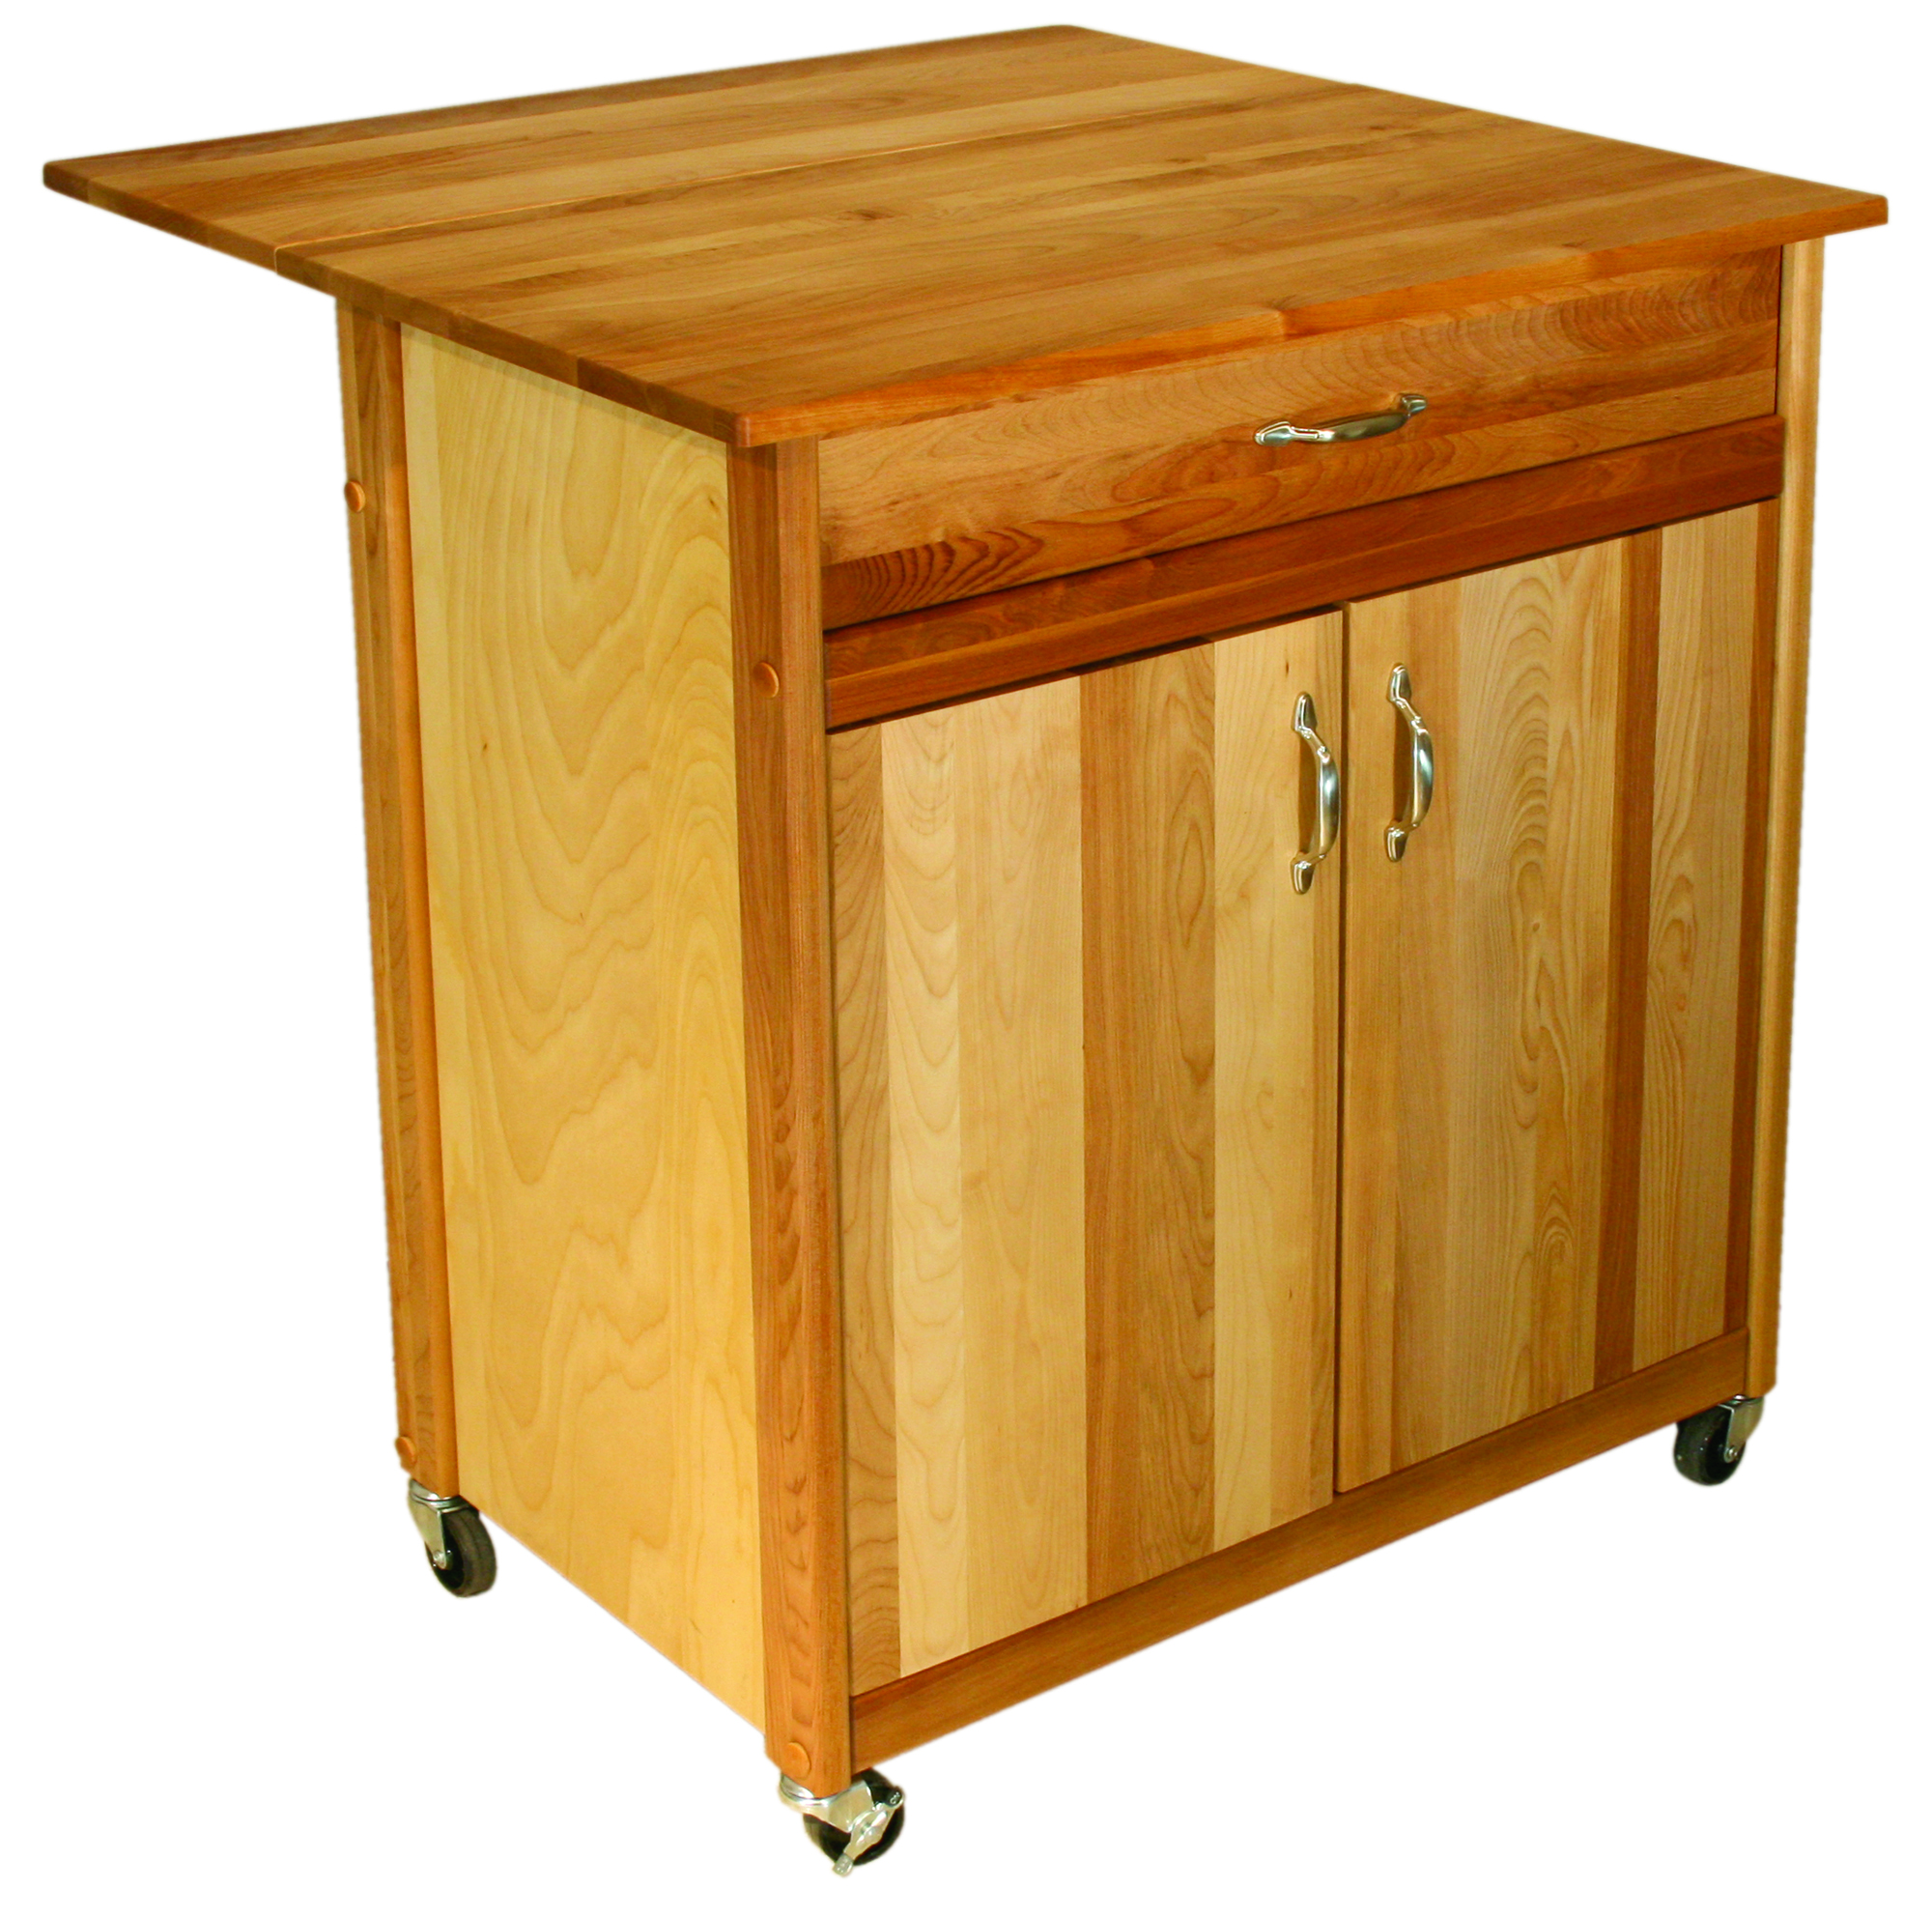 Catskill Kitchen Islands Mid Size Two Door Cart With Drop Leaf By Catskill